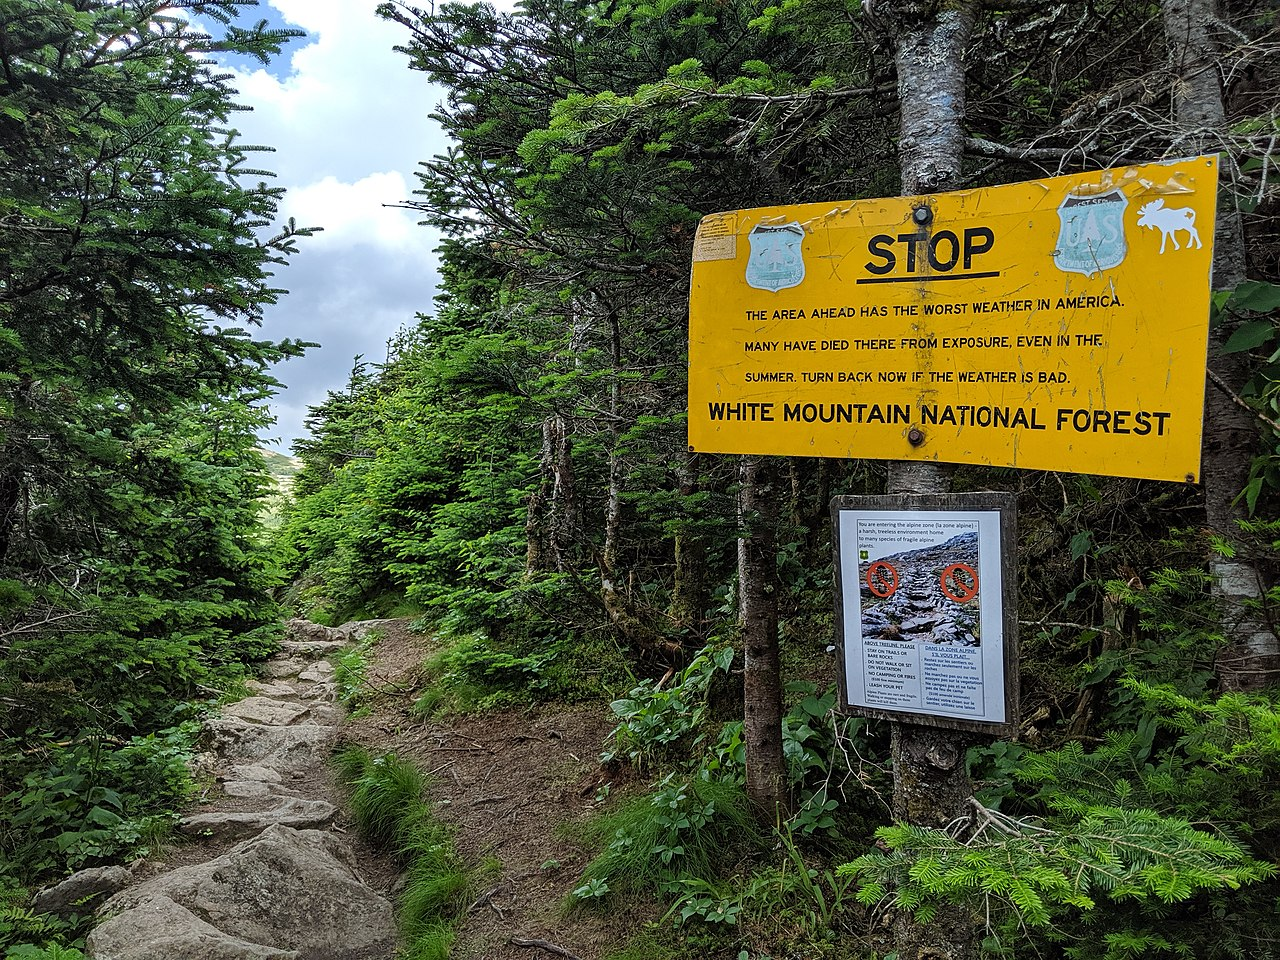 1280px-White_Mountain_National_Forest_Alpine_Zone_Warning_Sign.jpg